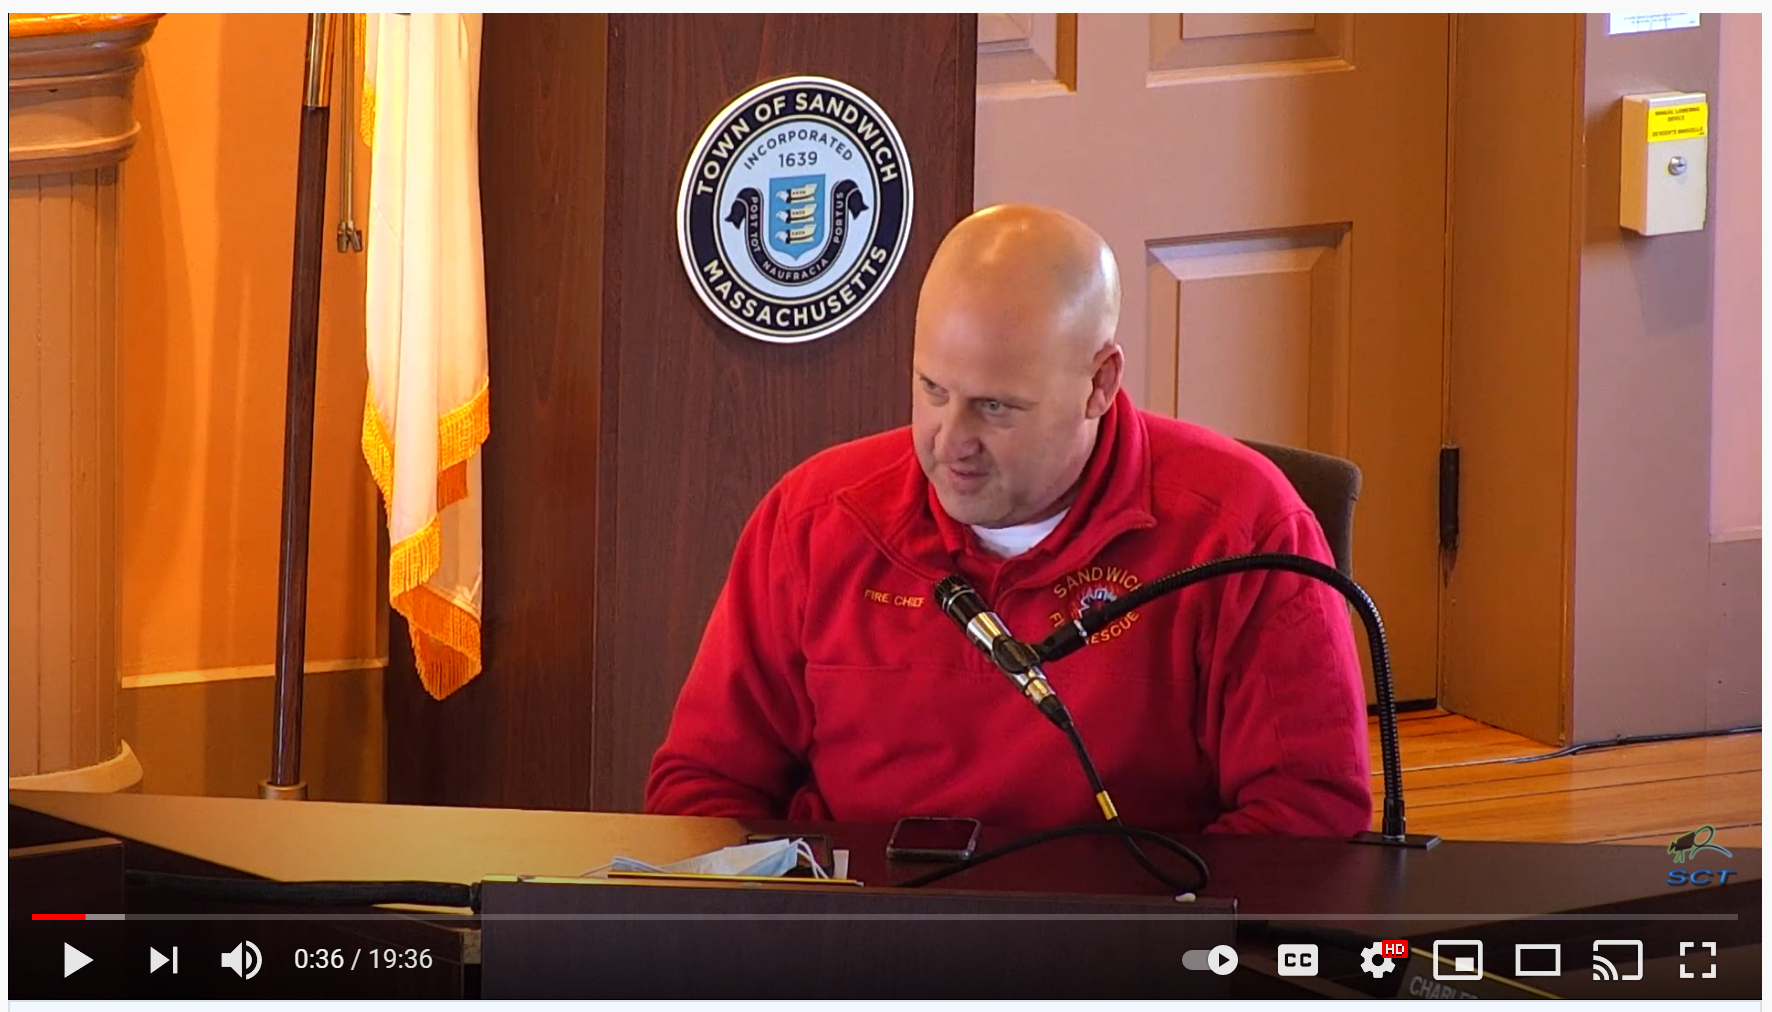 Fire Chief in red shirt speaking into a microphone